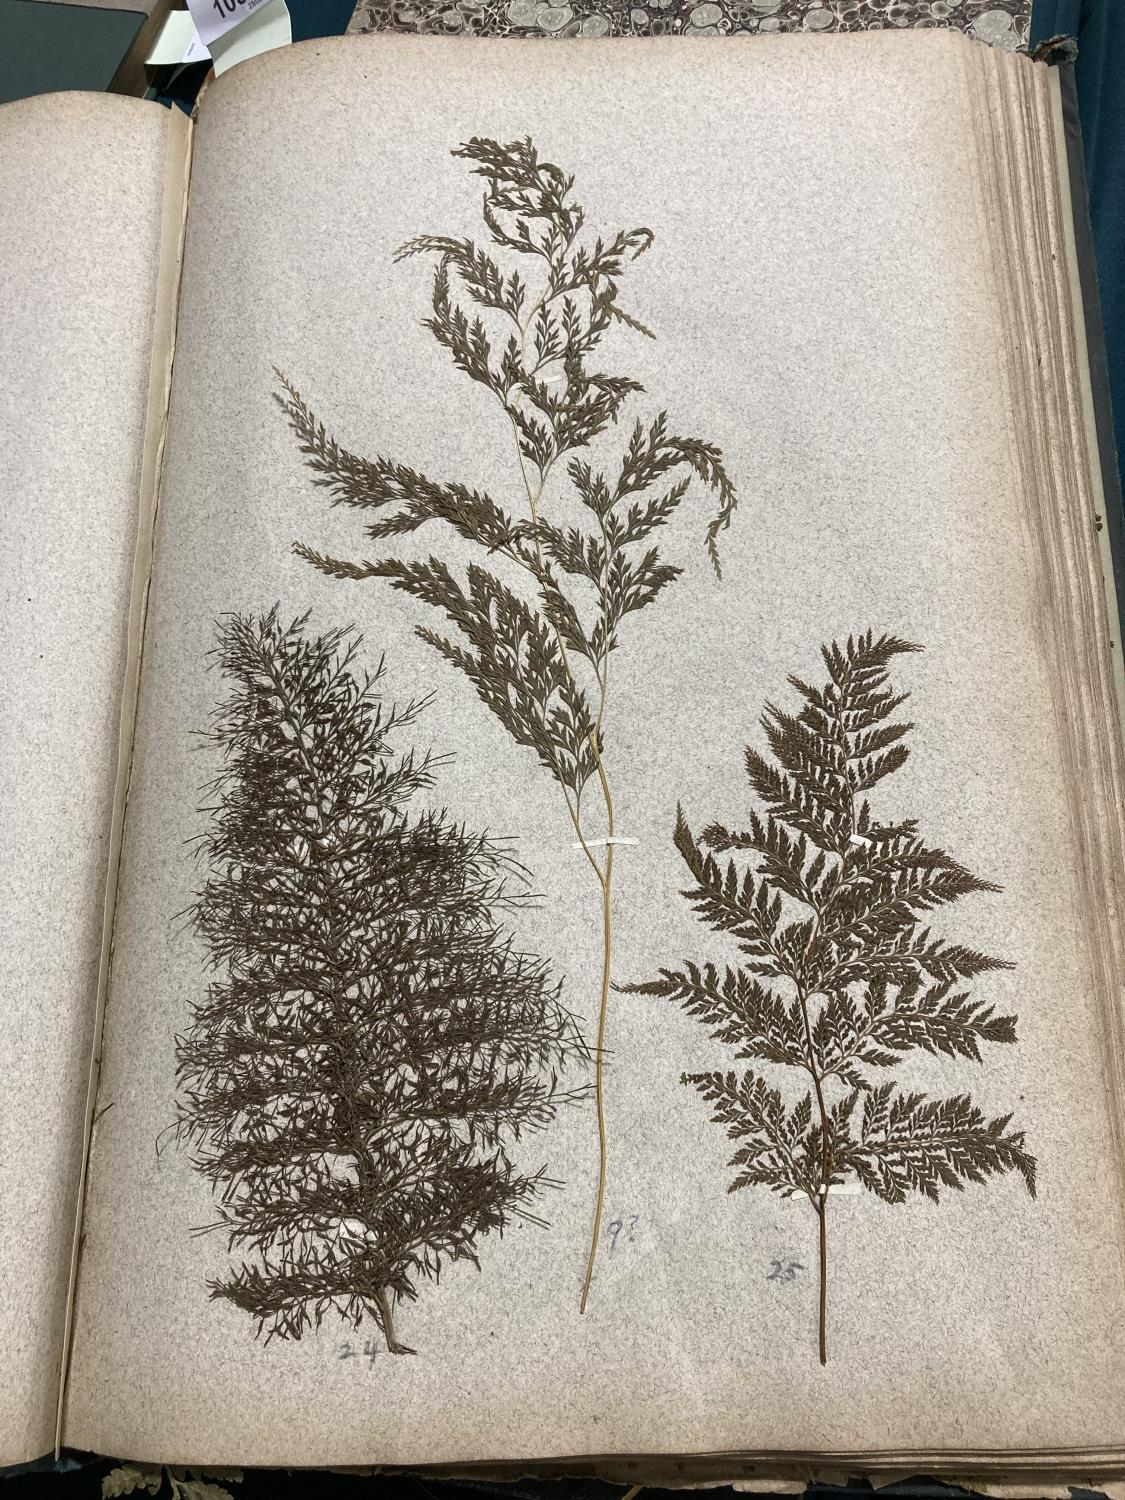 The Botanical Drying Album. A late-nineteenth century album of pressed plants specimens, mostly - Image 7 of 7